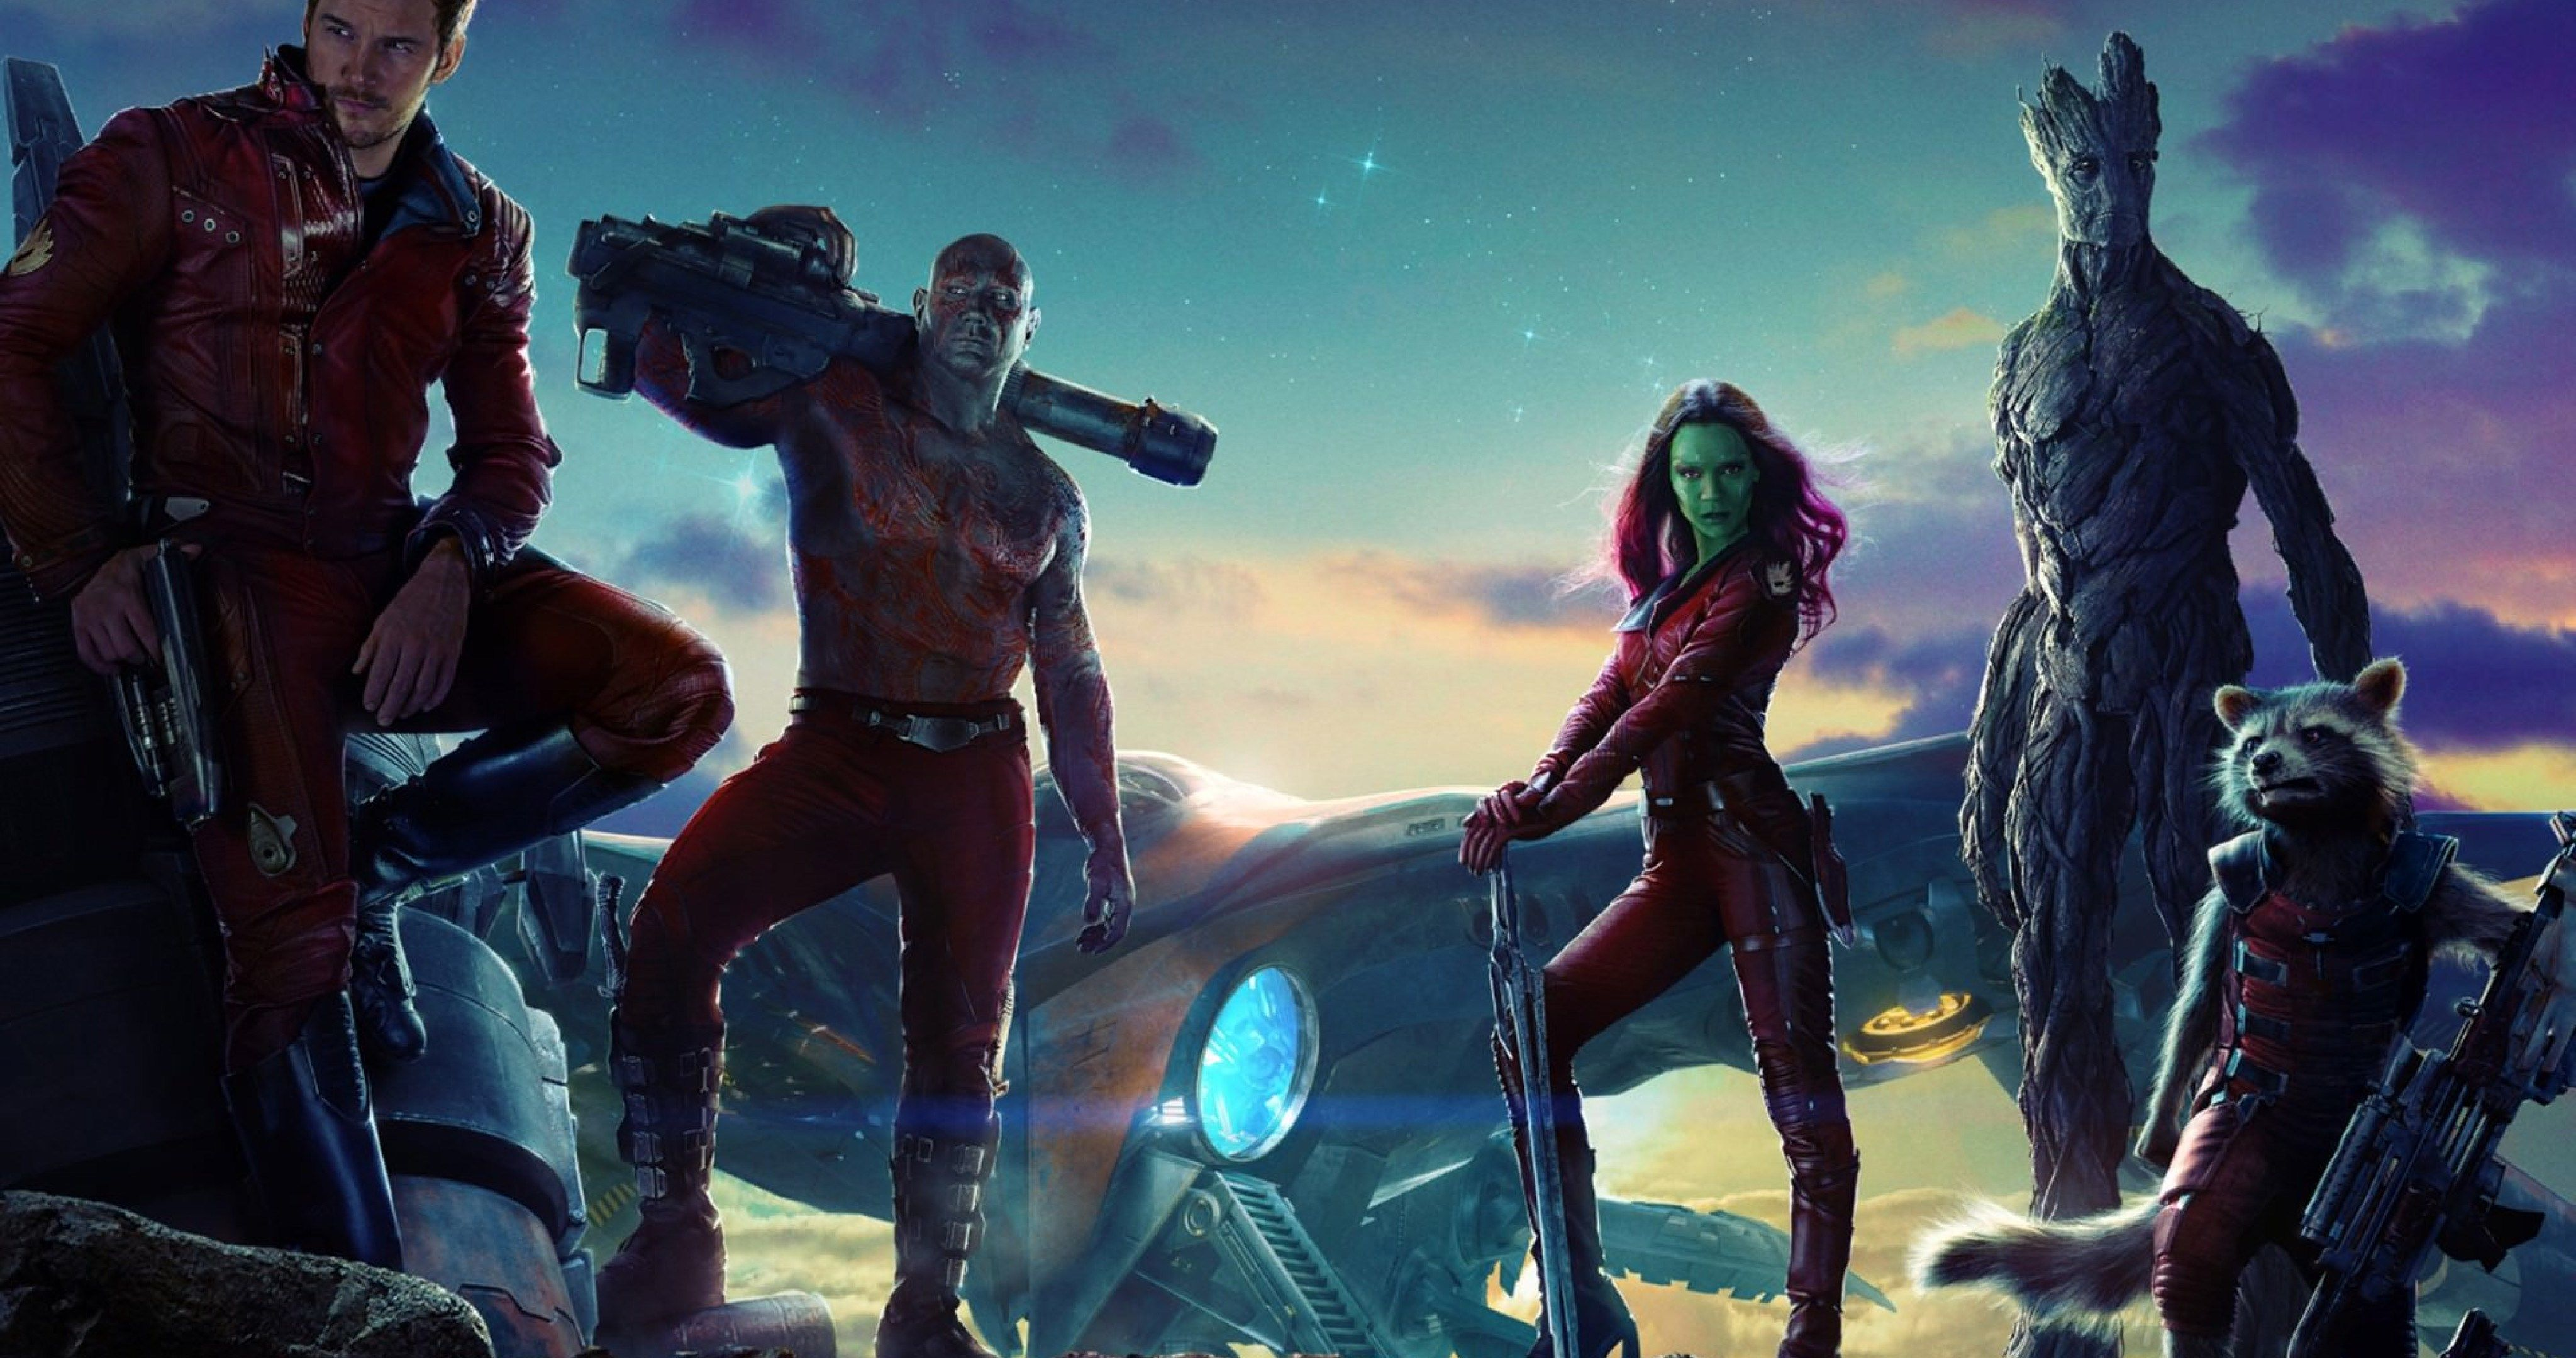 Guardians Of The Galaxy Movie 2014 4k Ultra Hd Wallpaper With